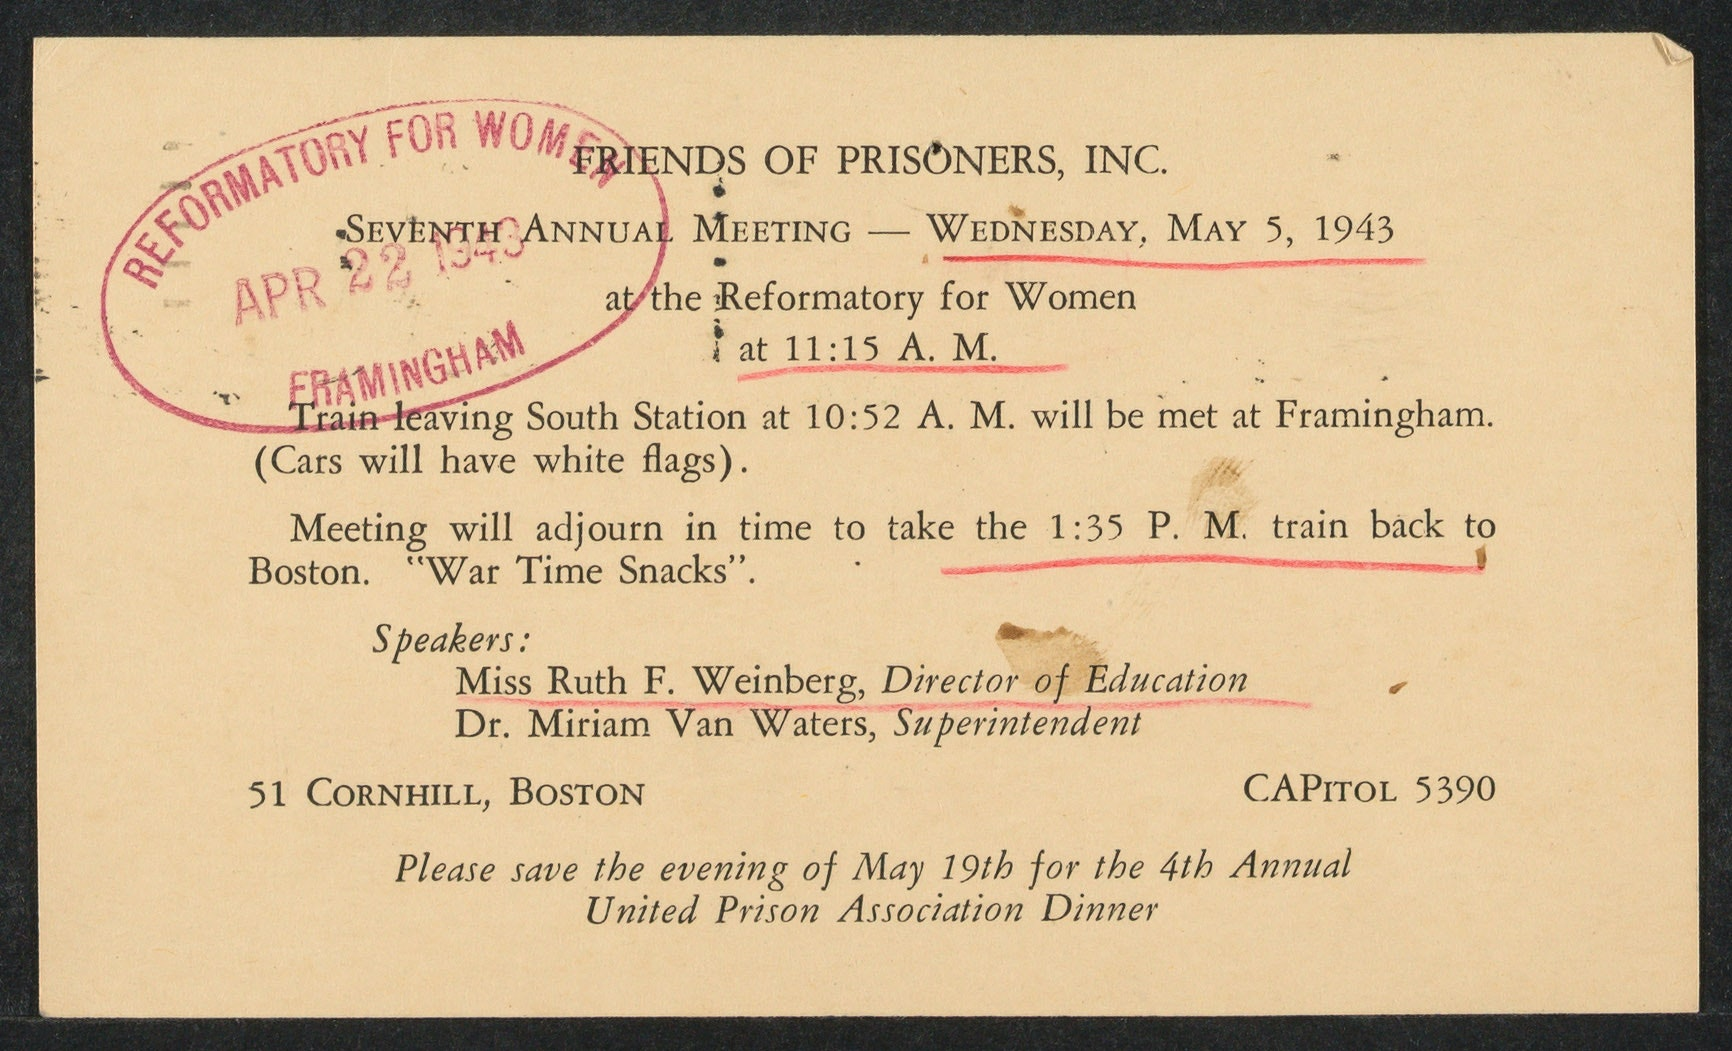 Miriam Van Waters' papers from 1942-1943. Outlines date and time for Seventh Annual Meeting.